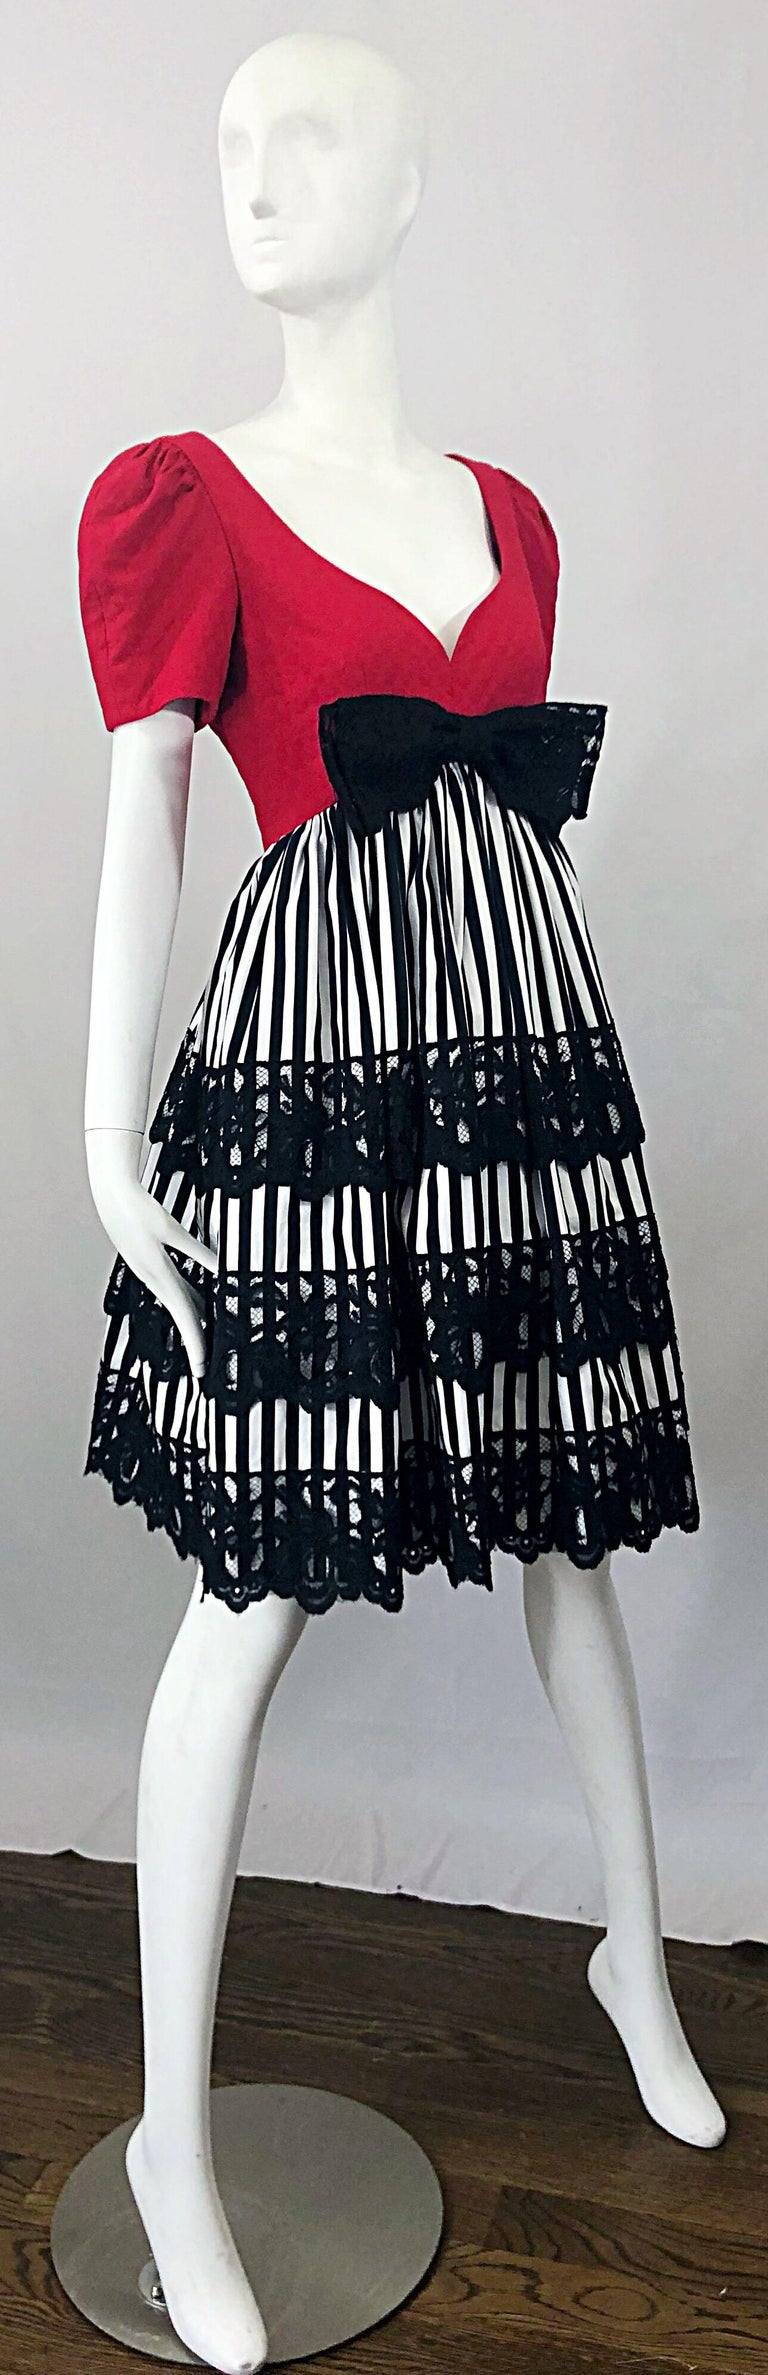 Vintage Adele Simpson Red + Black + White Fit n' Flare Empire Bow Lace Dress For Sale 6